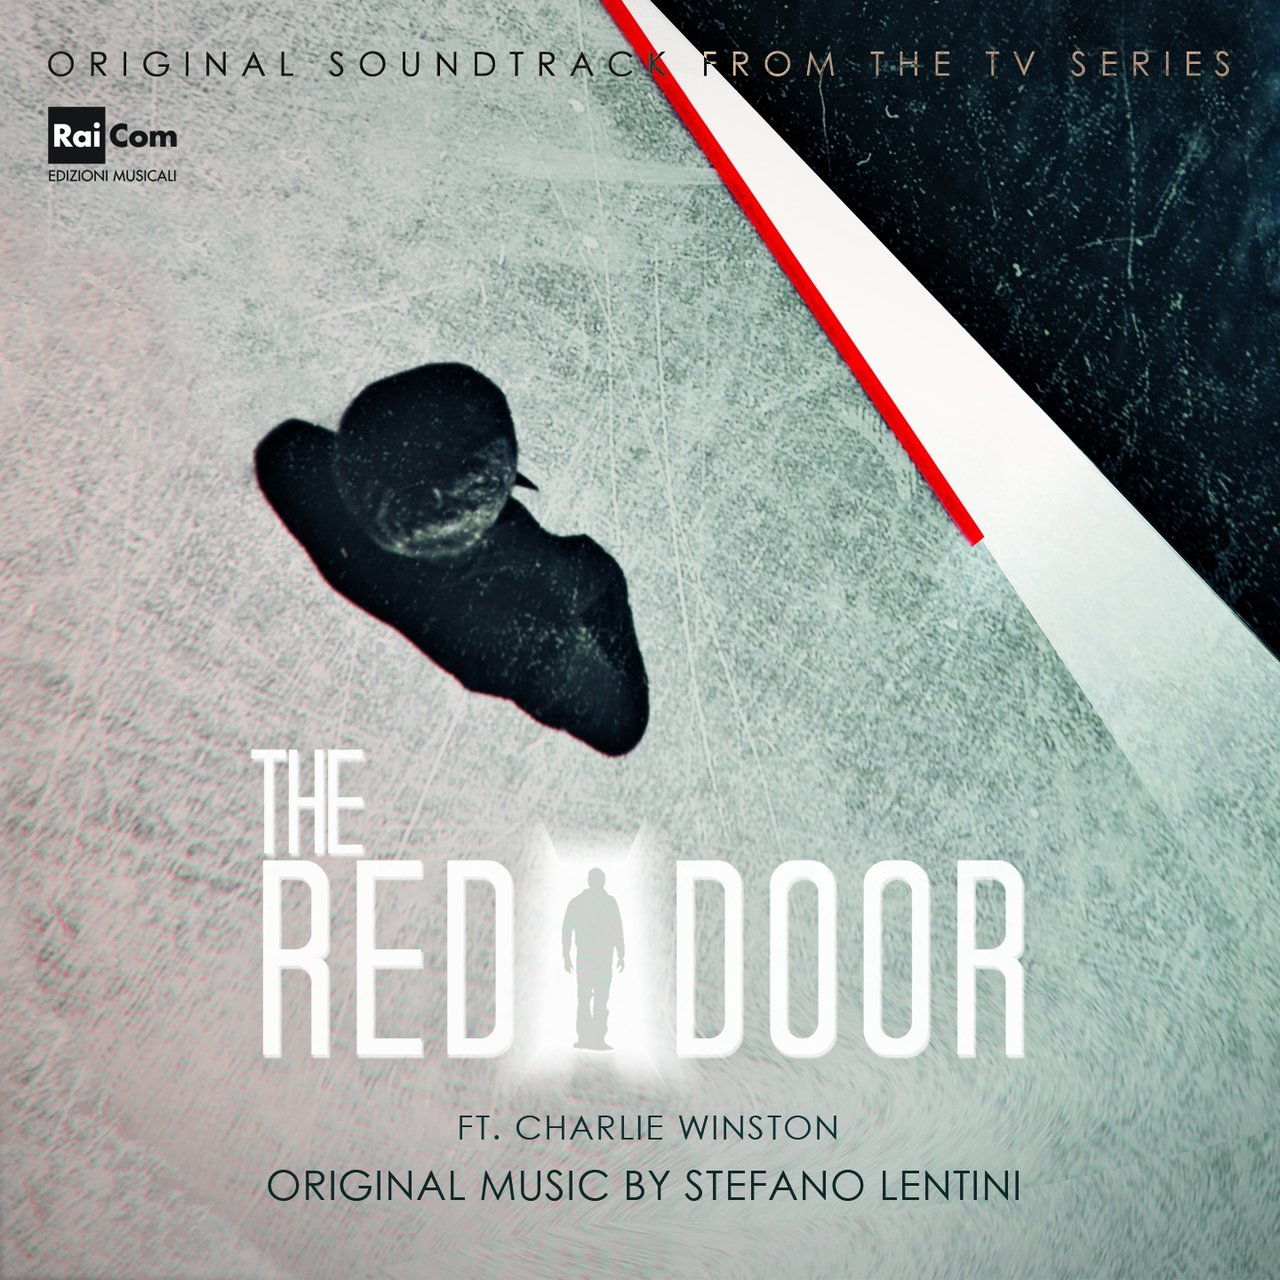 Tidal Listen To The Red Door Original Soundtrack From The Tv